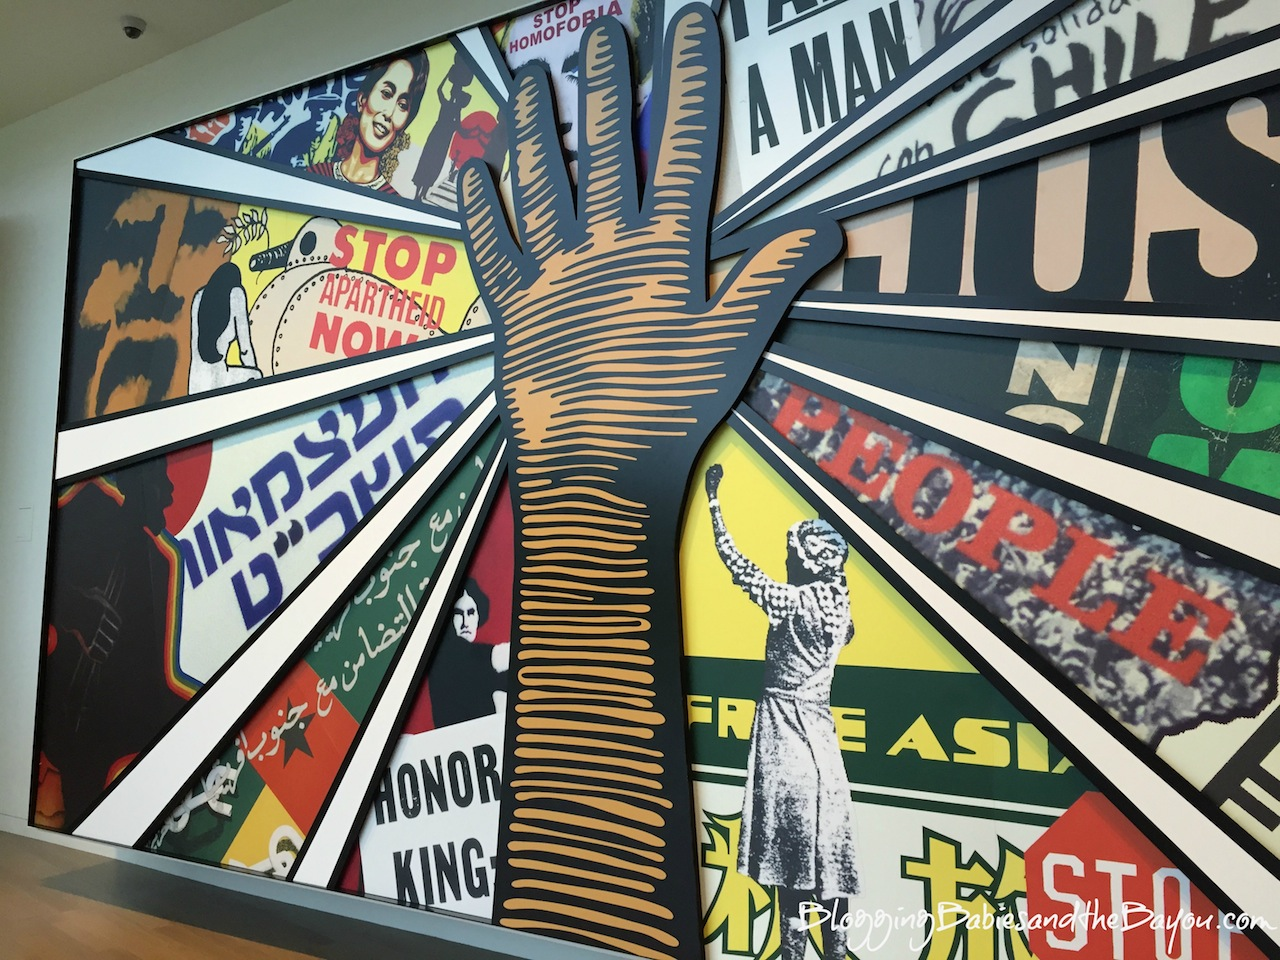 Atlanta Georgia Family Attractions - Civil Rights Museum #BayouTravel